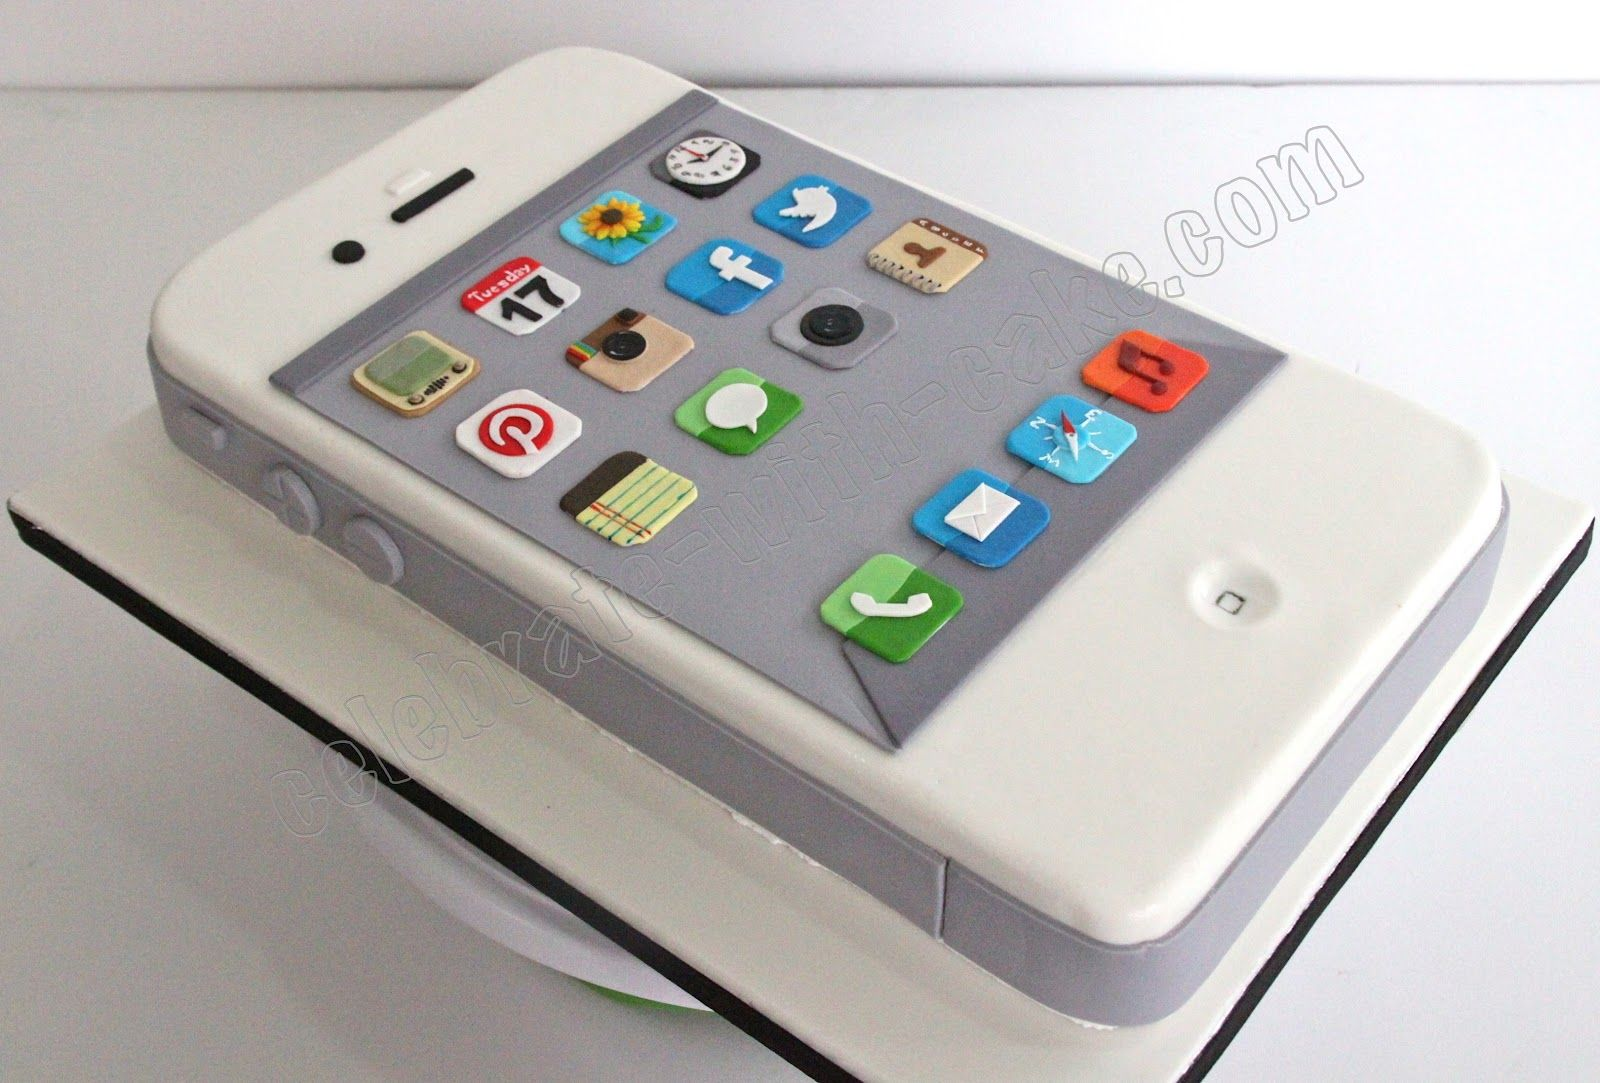 Iphone cake on pinterest for Ideas for iphone apps